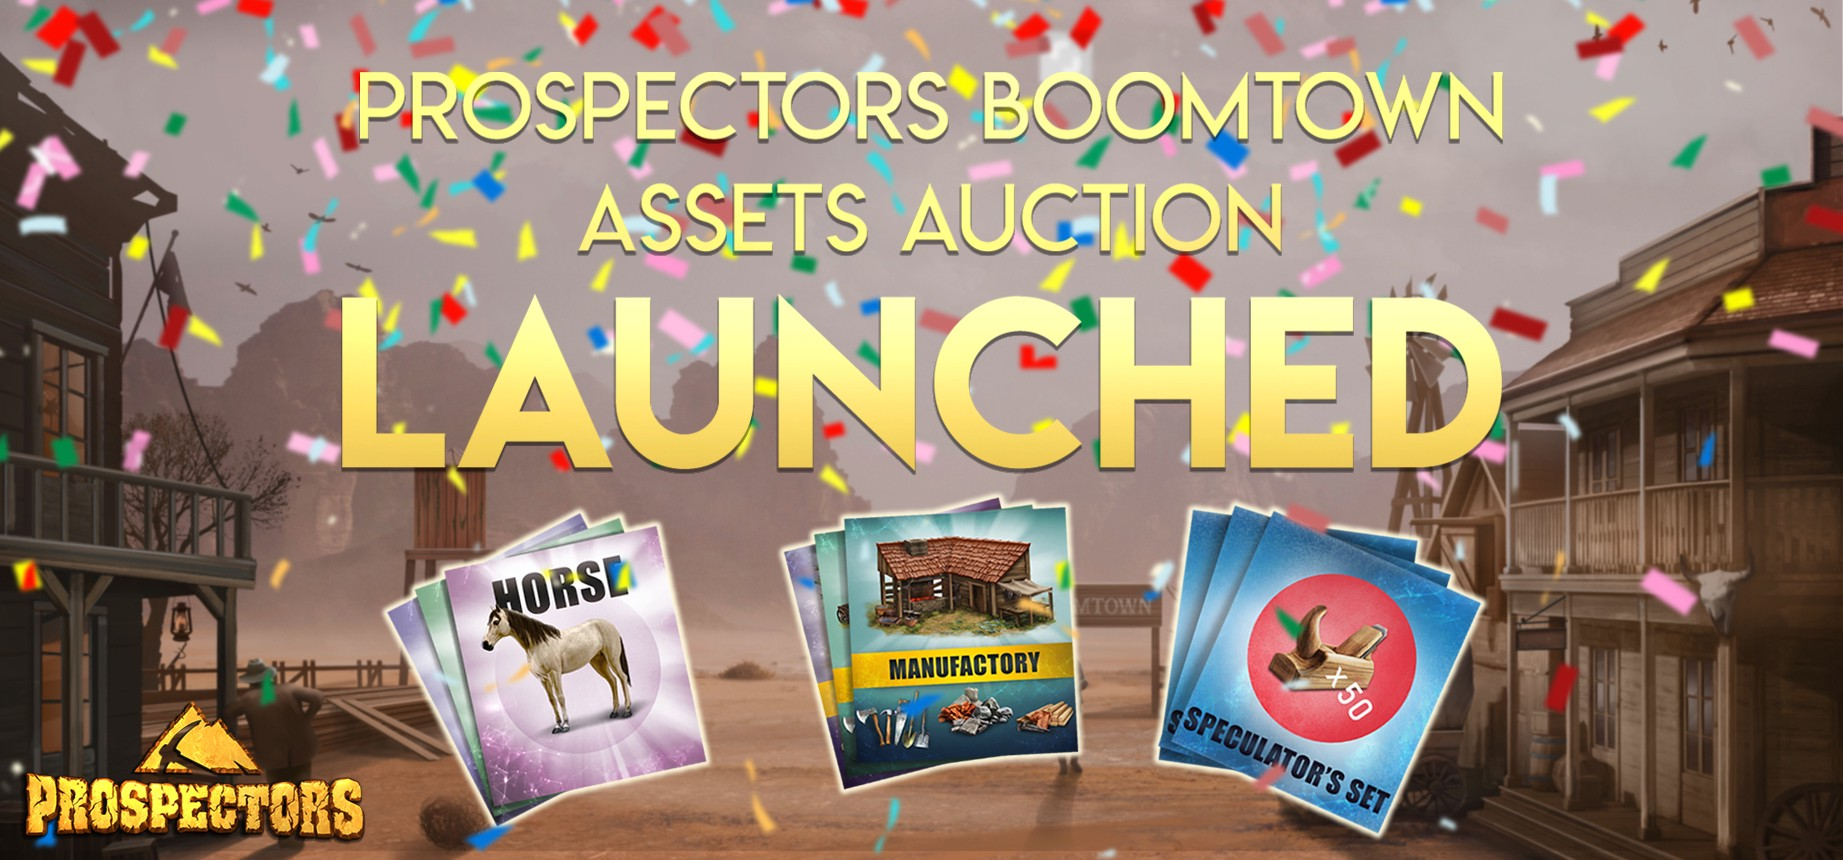 The Boomtown Assets Auction is launched